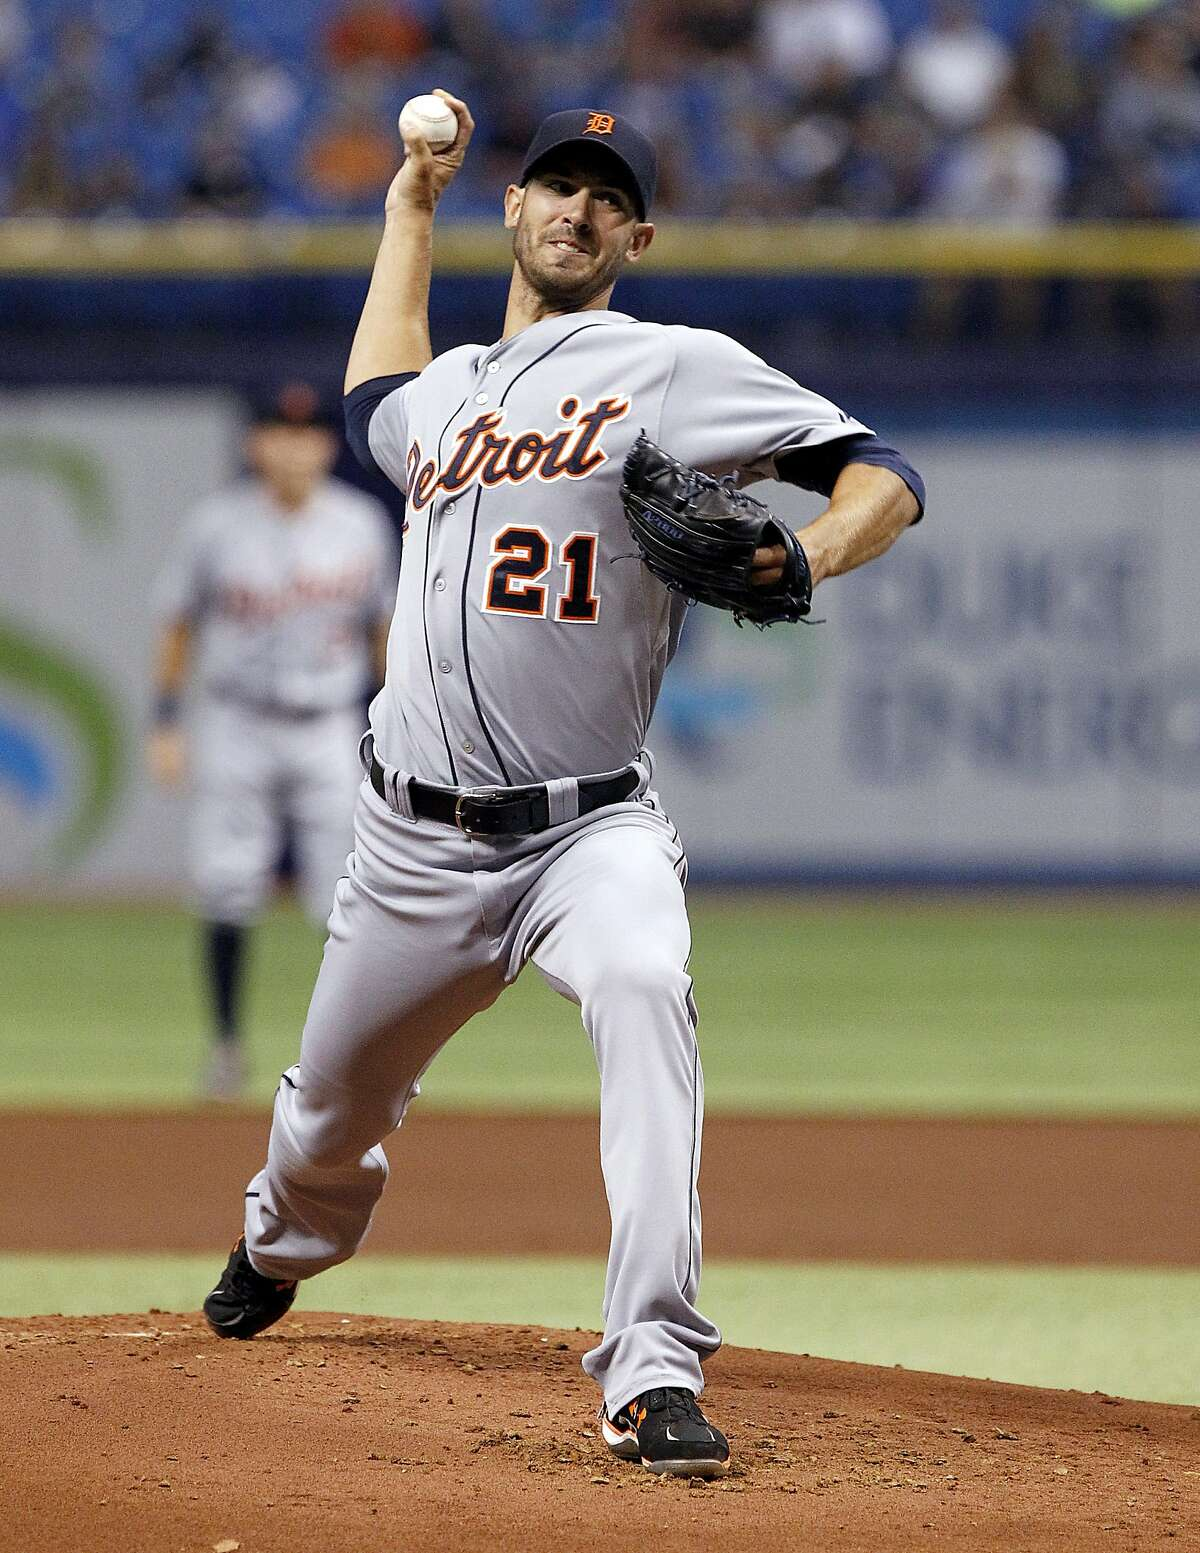 ST. PETERSBURG, FL - AUGUST 20: Rick Porcello #21 of the Detroit Tigers during the first inning of a game against the Tampa Bay Rays on August 20, 2014 at Tropicana Field in St. Petersburg, Florida. (Photo by Brian Blanco/Getty Images)